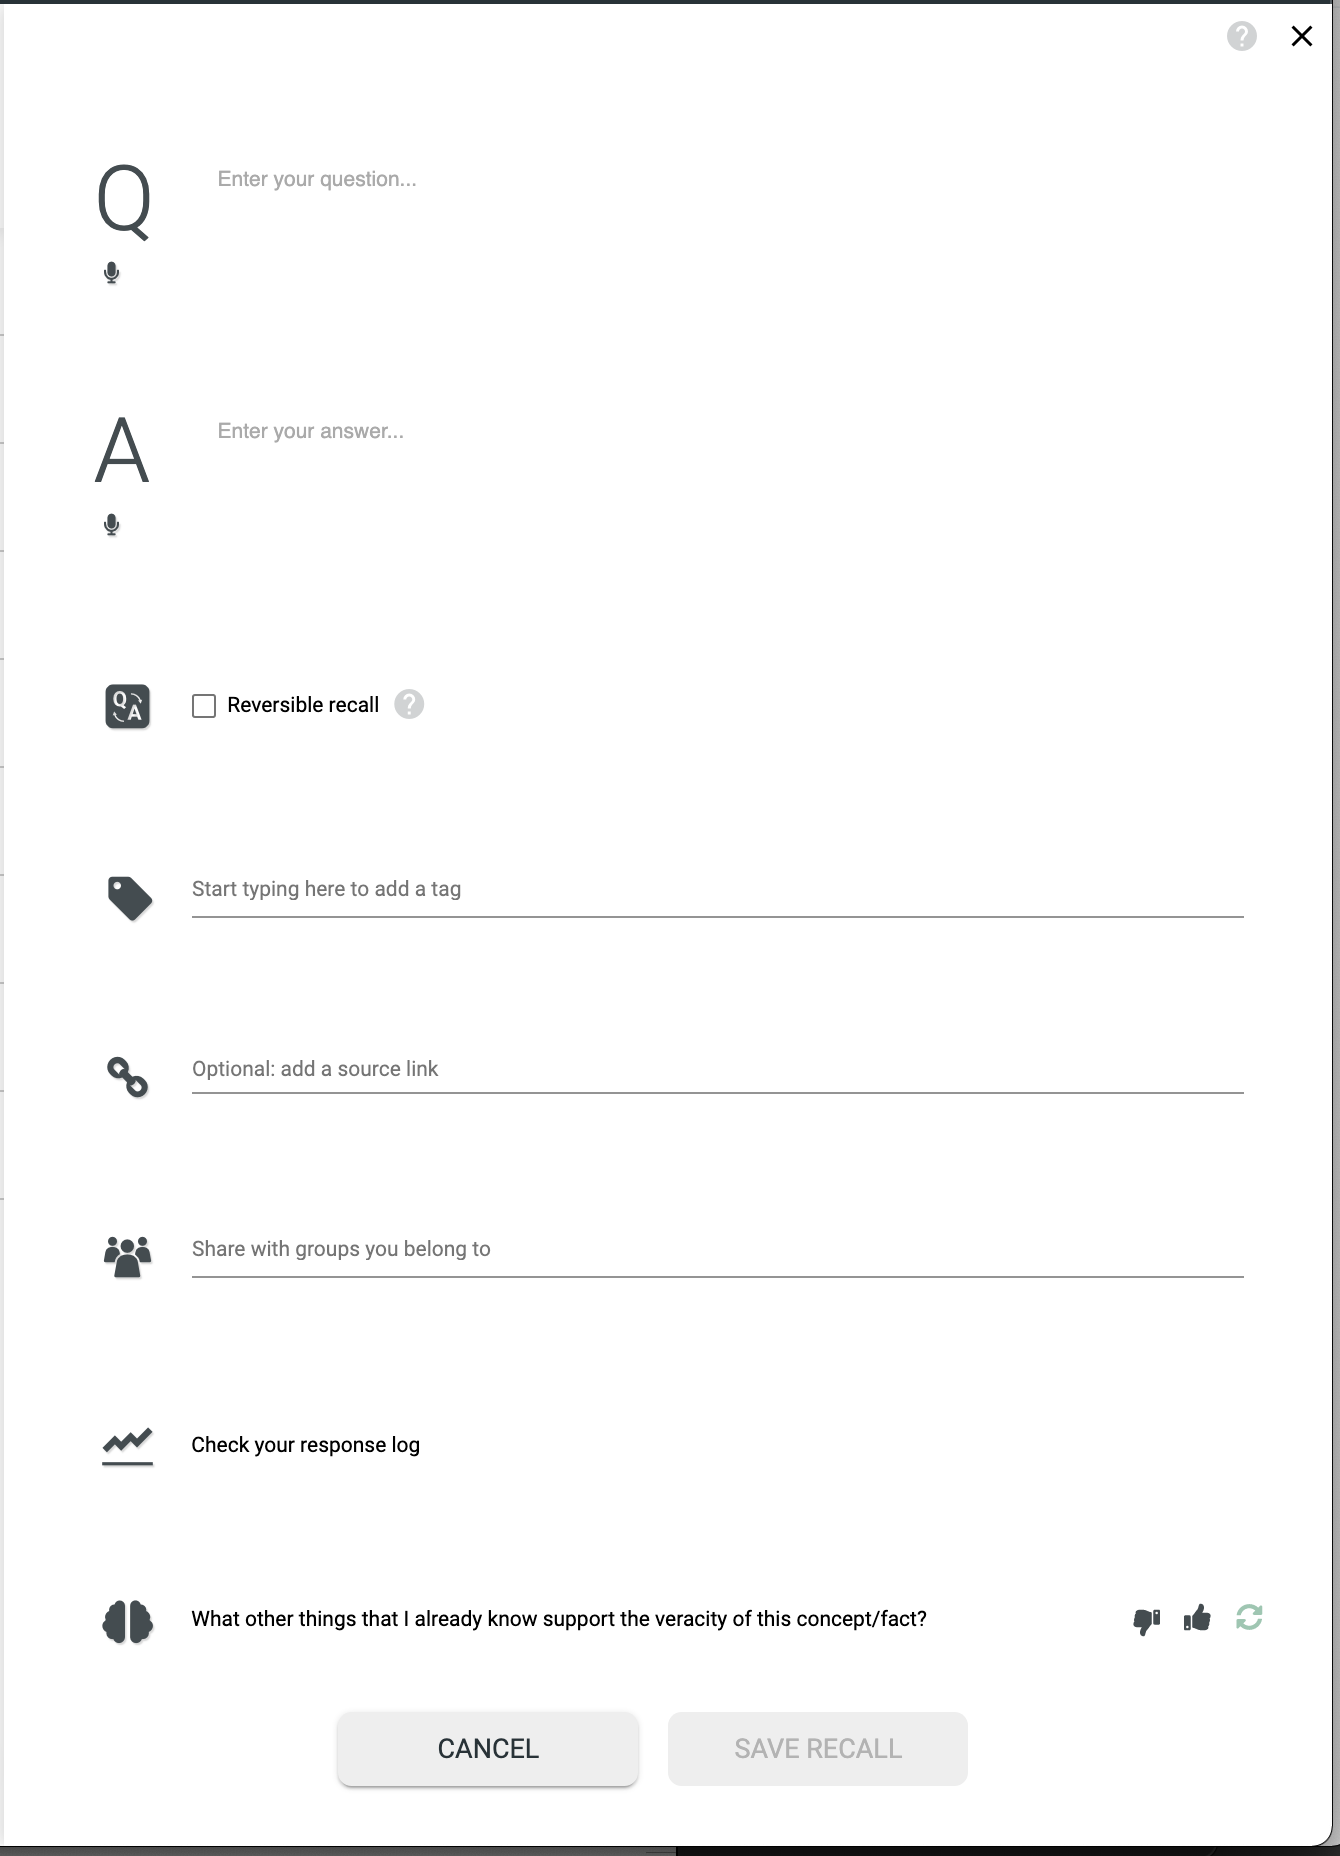 The CREATE NEW RECALL form.